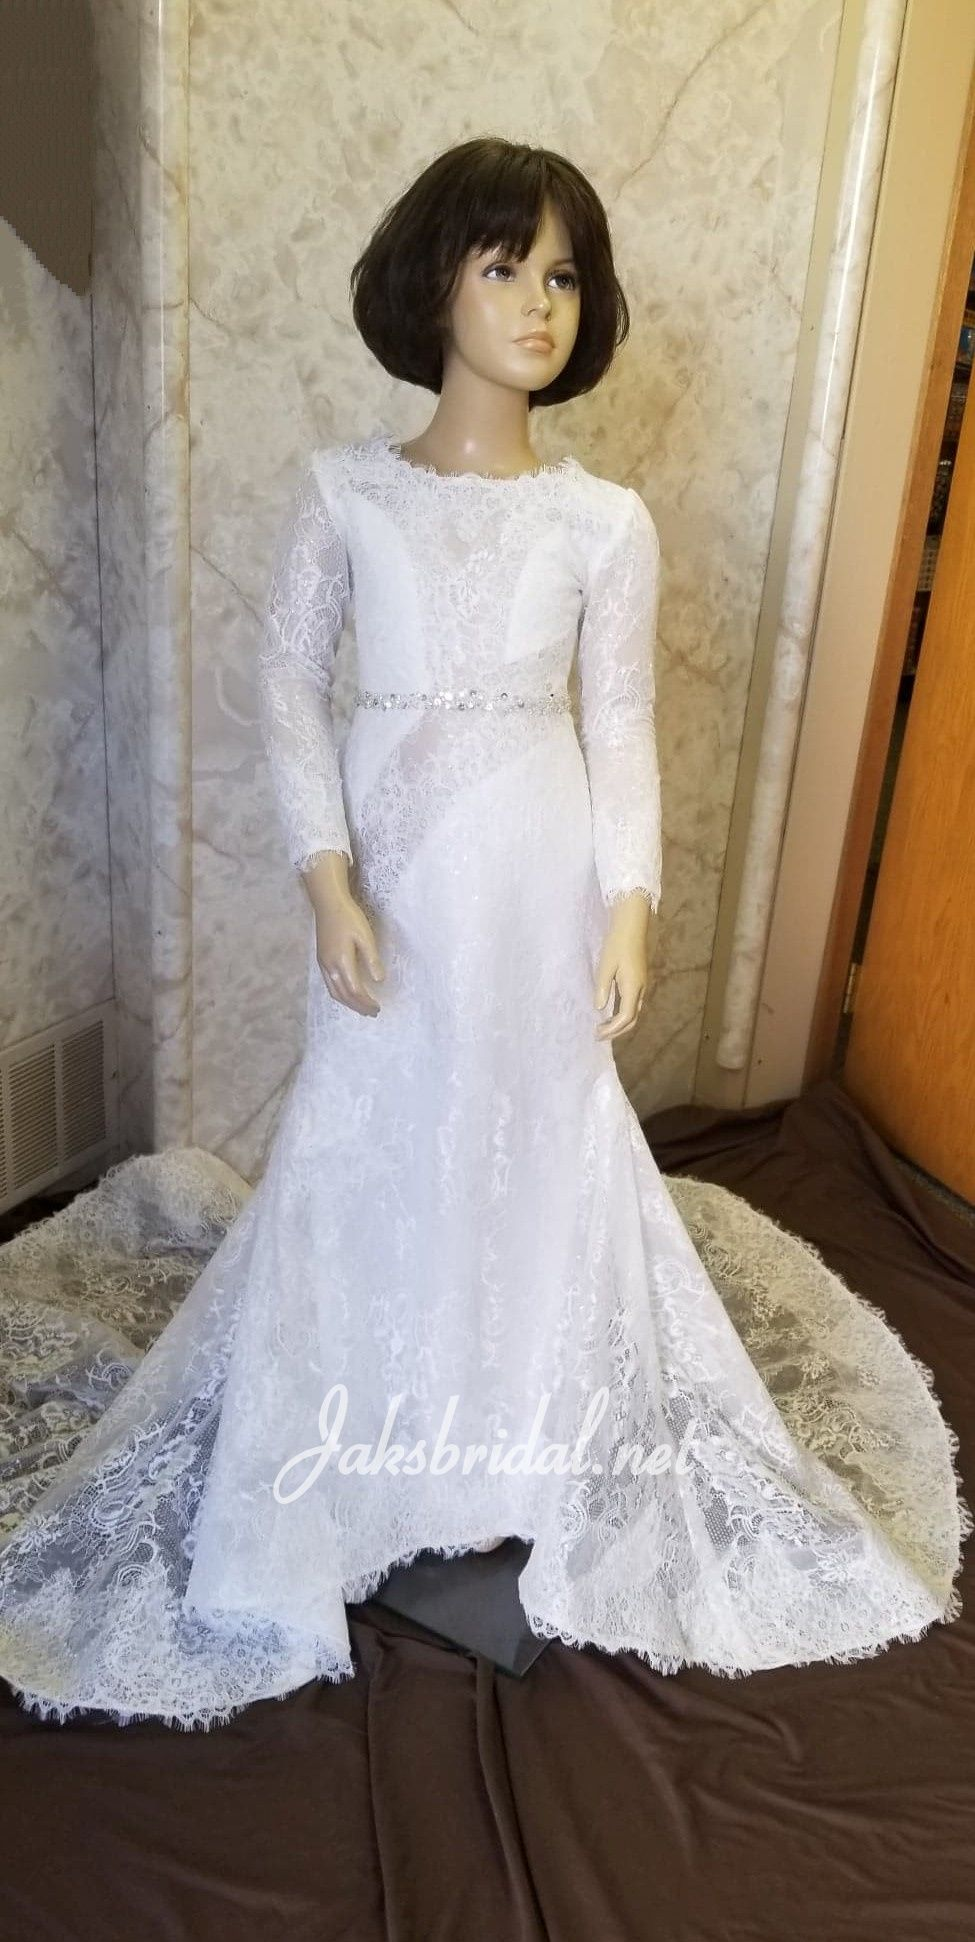 If you looking for flower girls wedding dresses to match